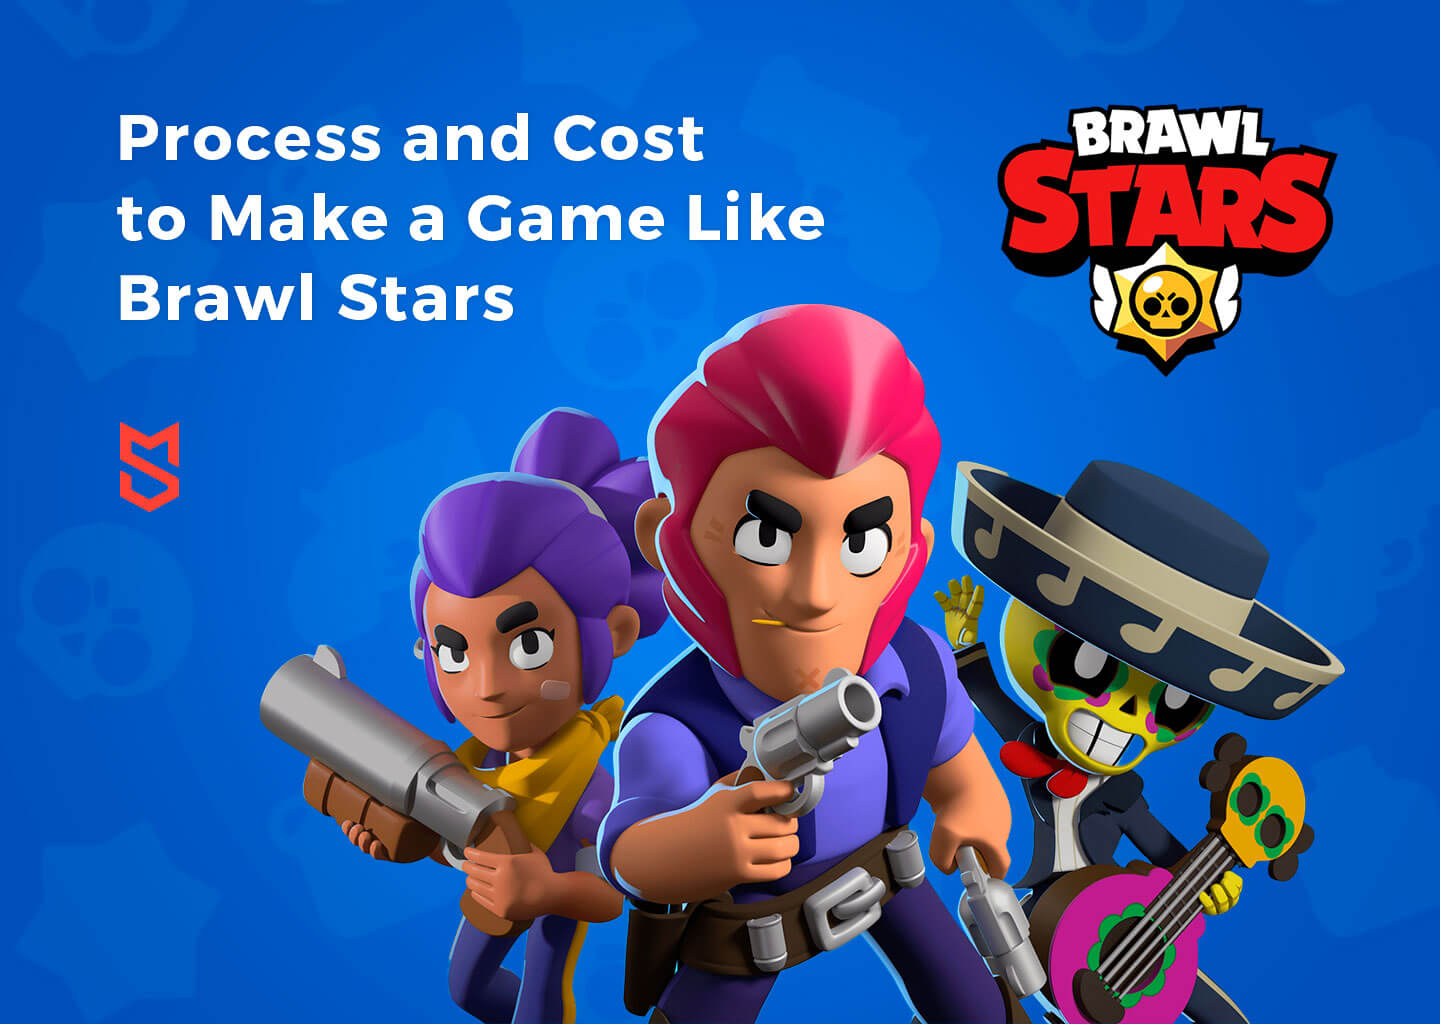 Process and Cost to Make a Game Like Brawl Stars